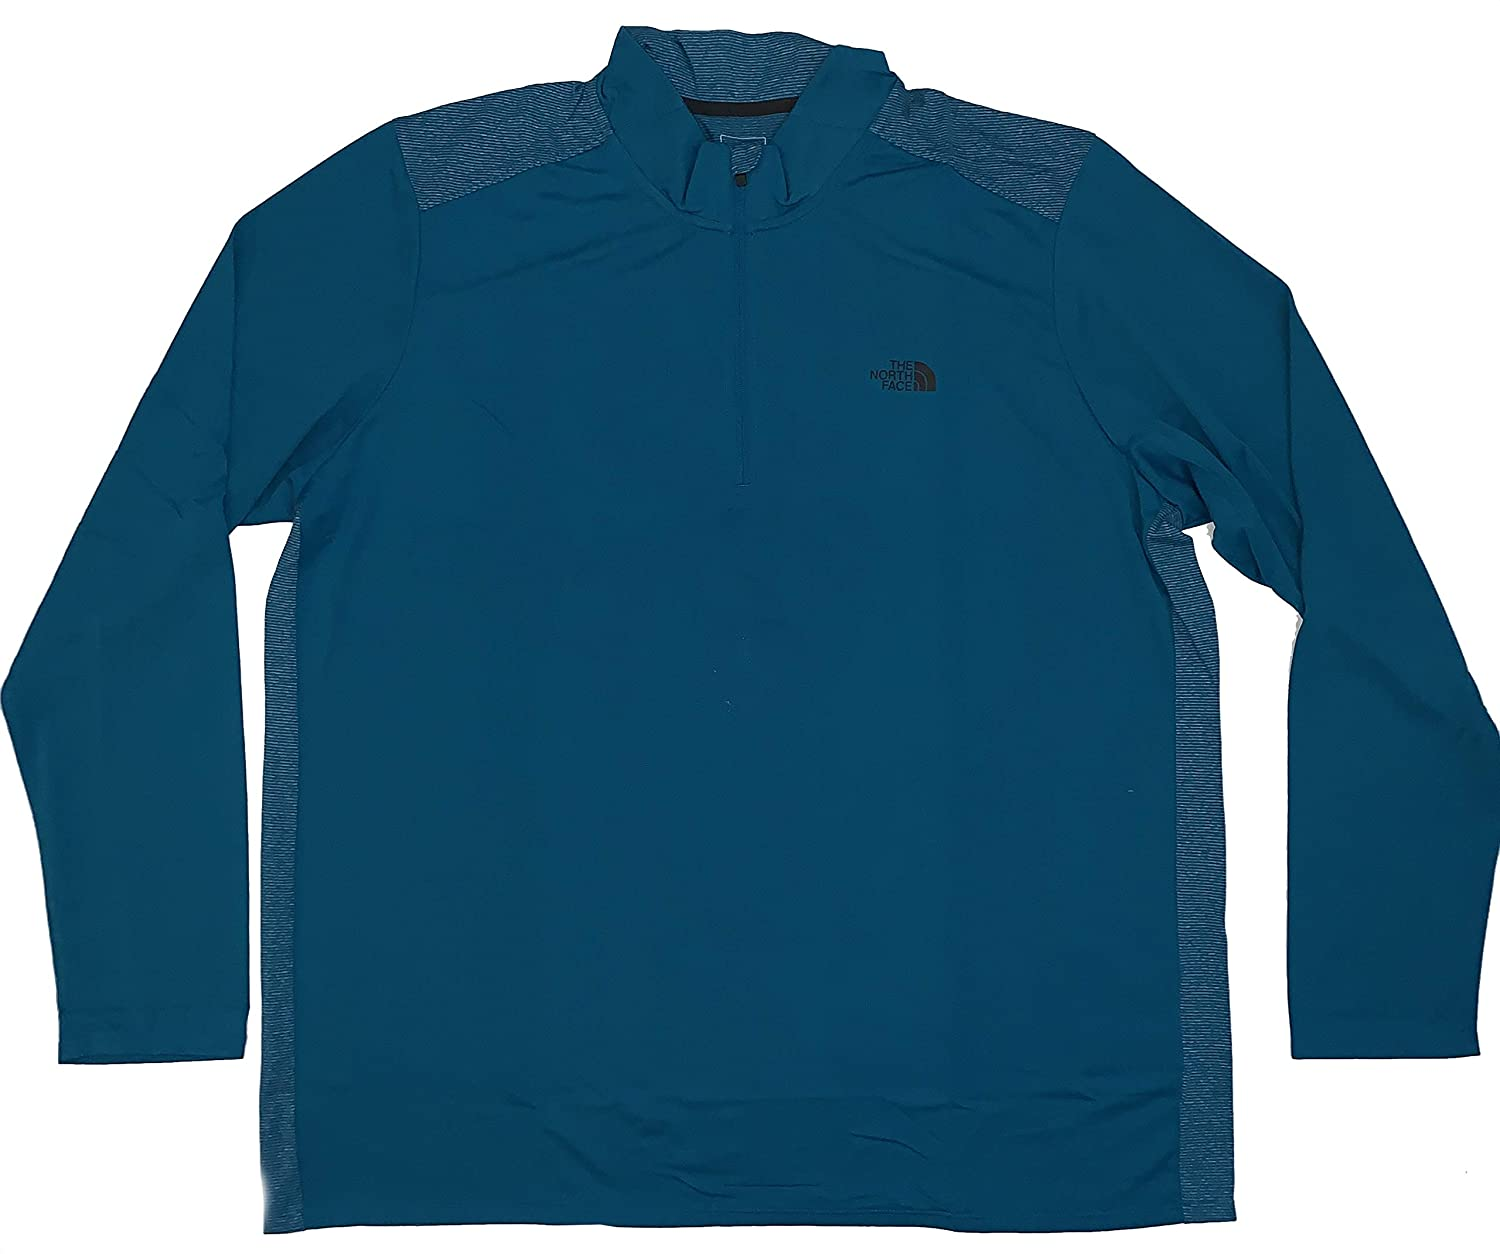 9fbdf1c1b Amazon.com: The North Face Men's Versitas 1/4 Zip Long Sleeve ...